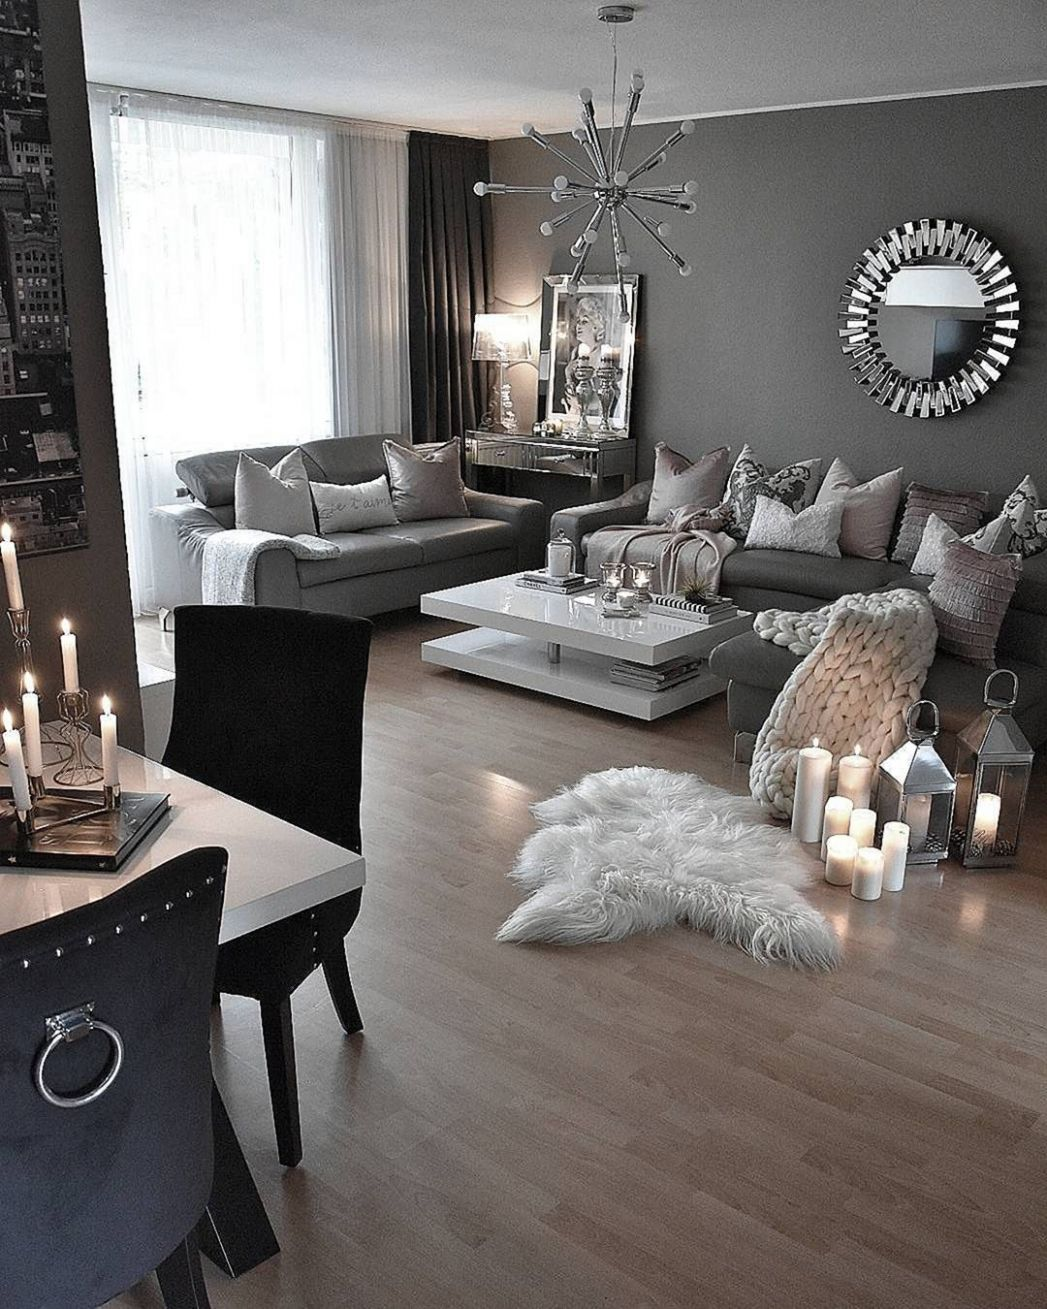 10+ Best Black and White Interior Design Ideas / FresHOUZ.com ..